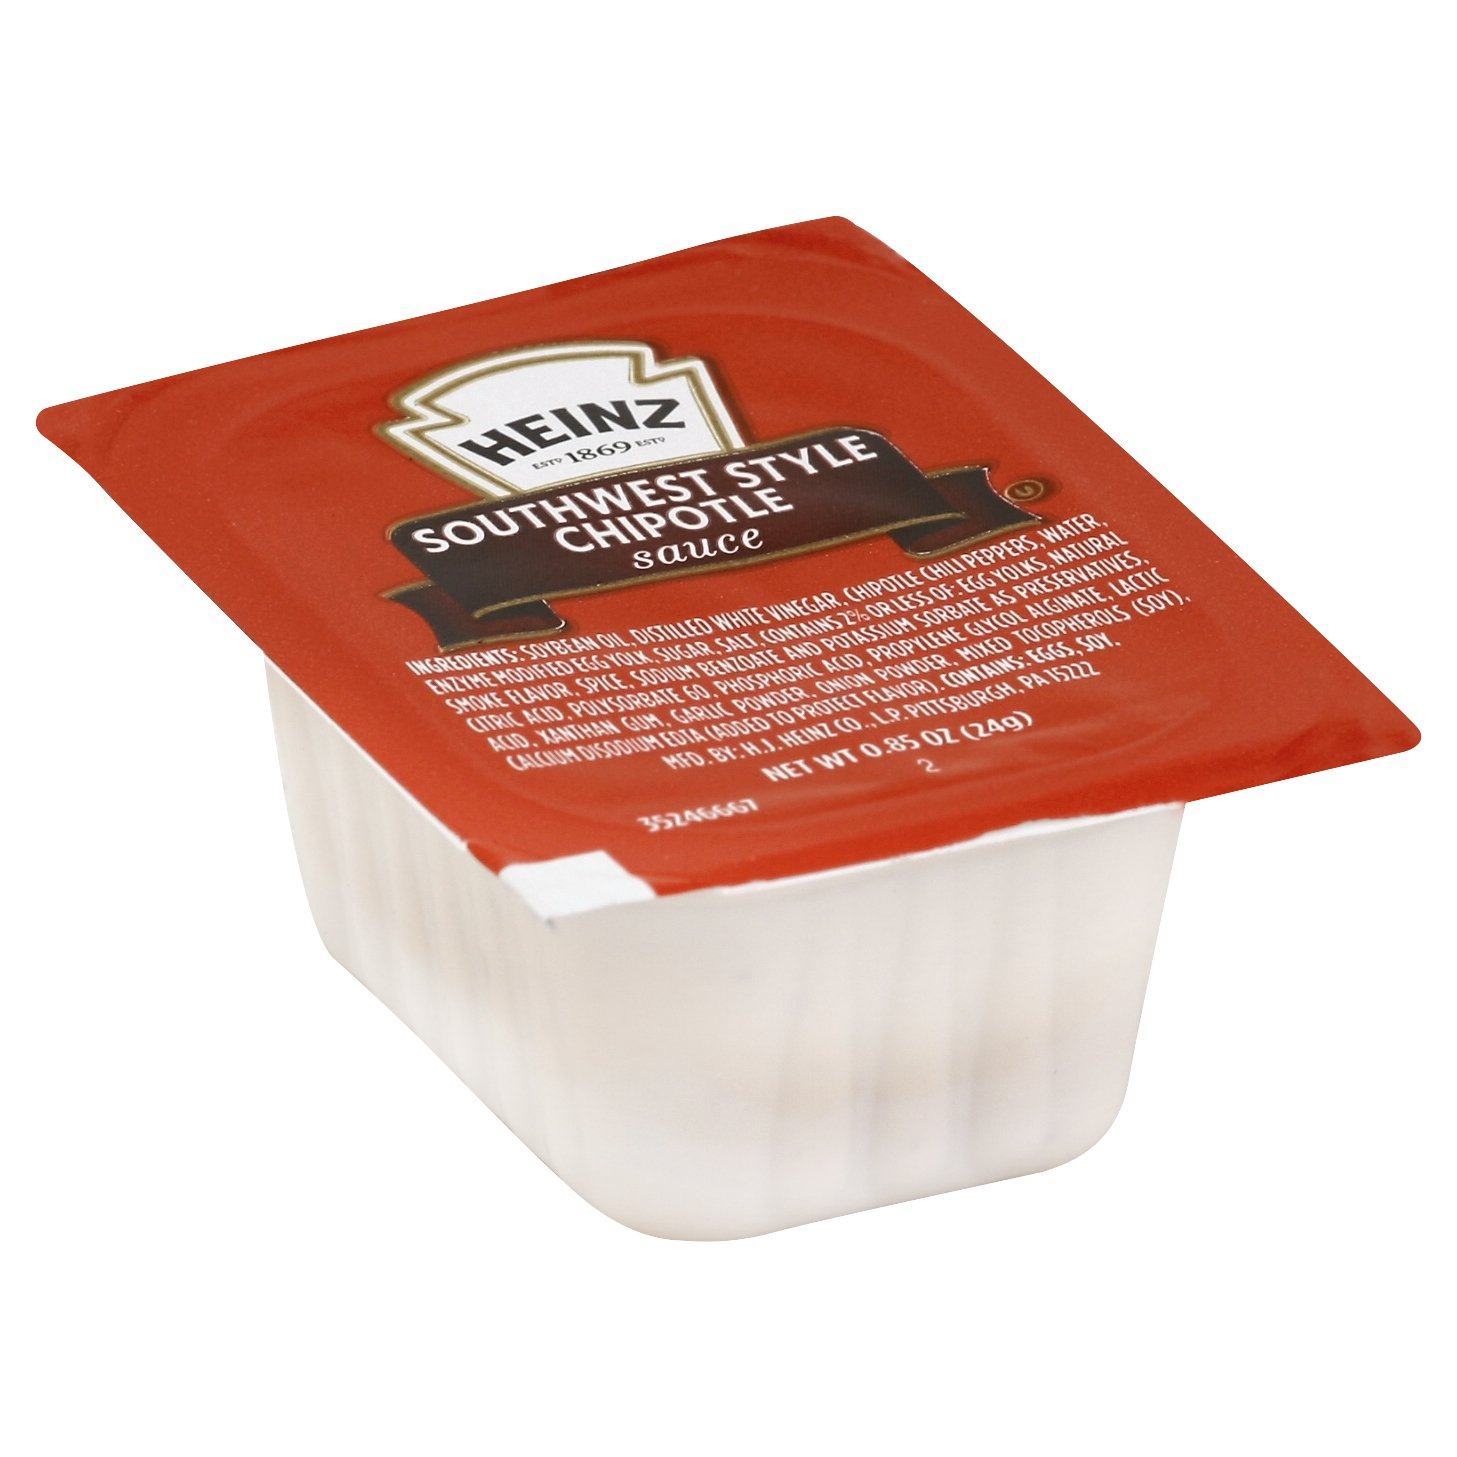 Heinz Southwest Style Chipotle Dipping Sauce, 0.85 Ounce - 100 per case.